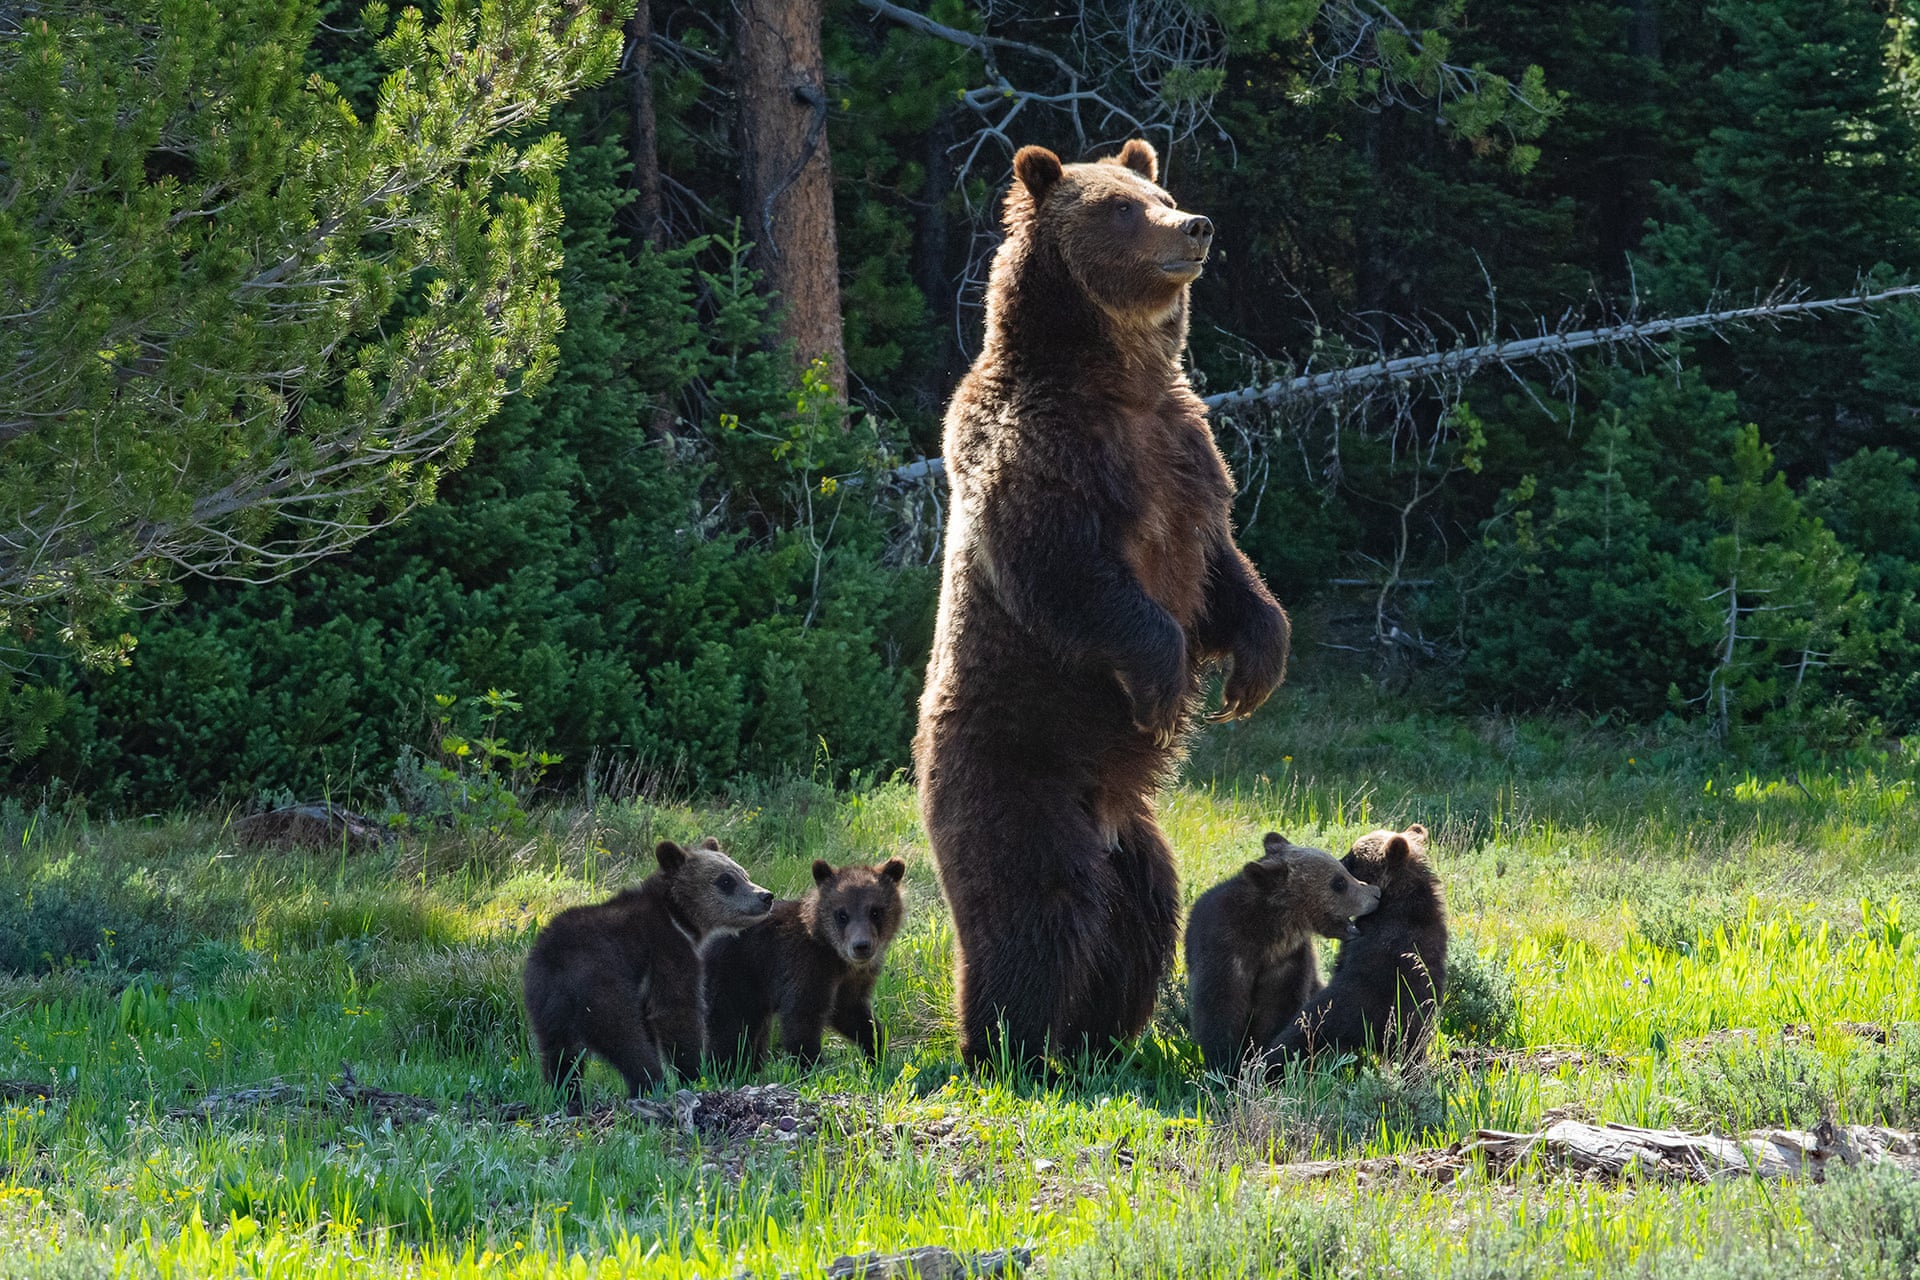 'She still lives!' Famed Yellowstone grizzly bear emerges from winter – with cubs